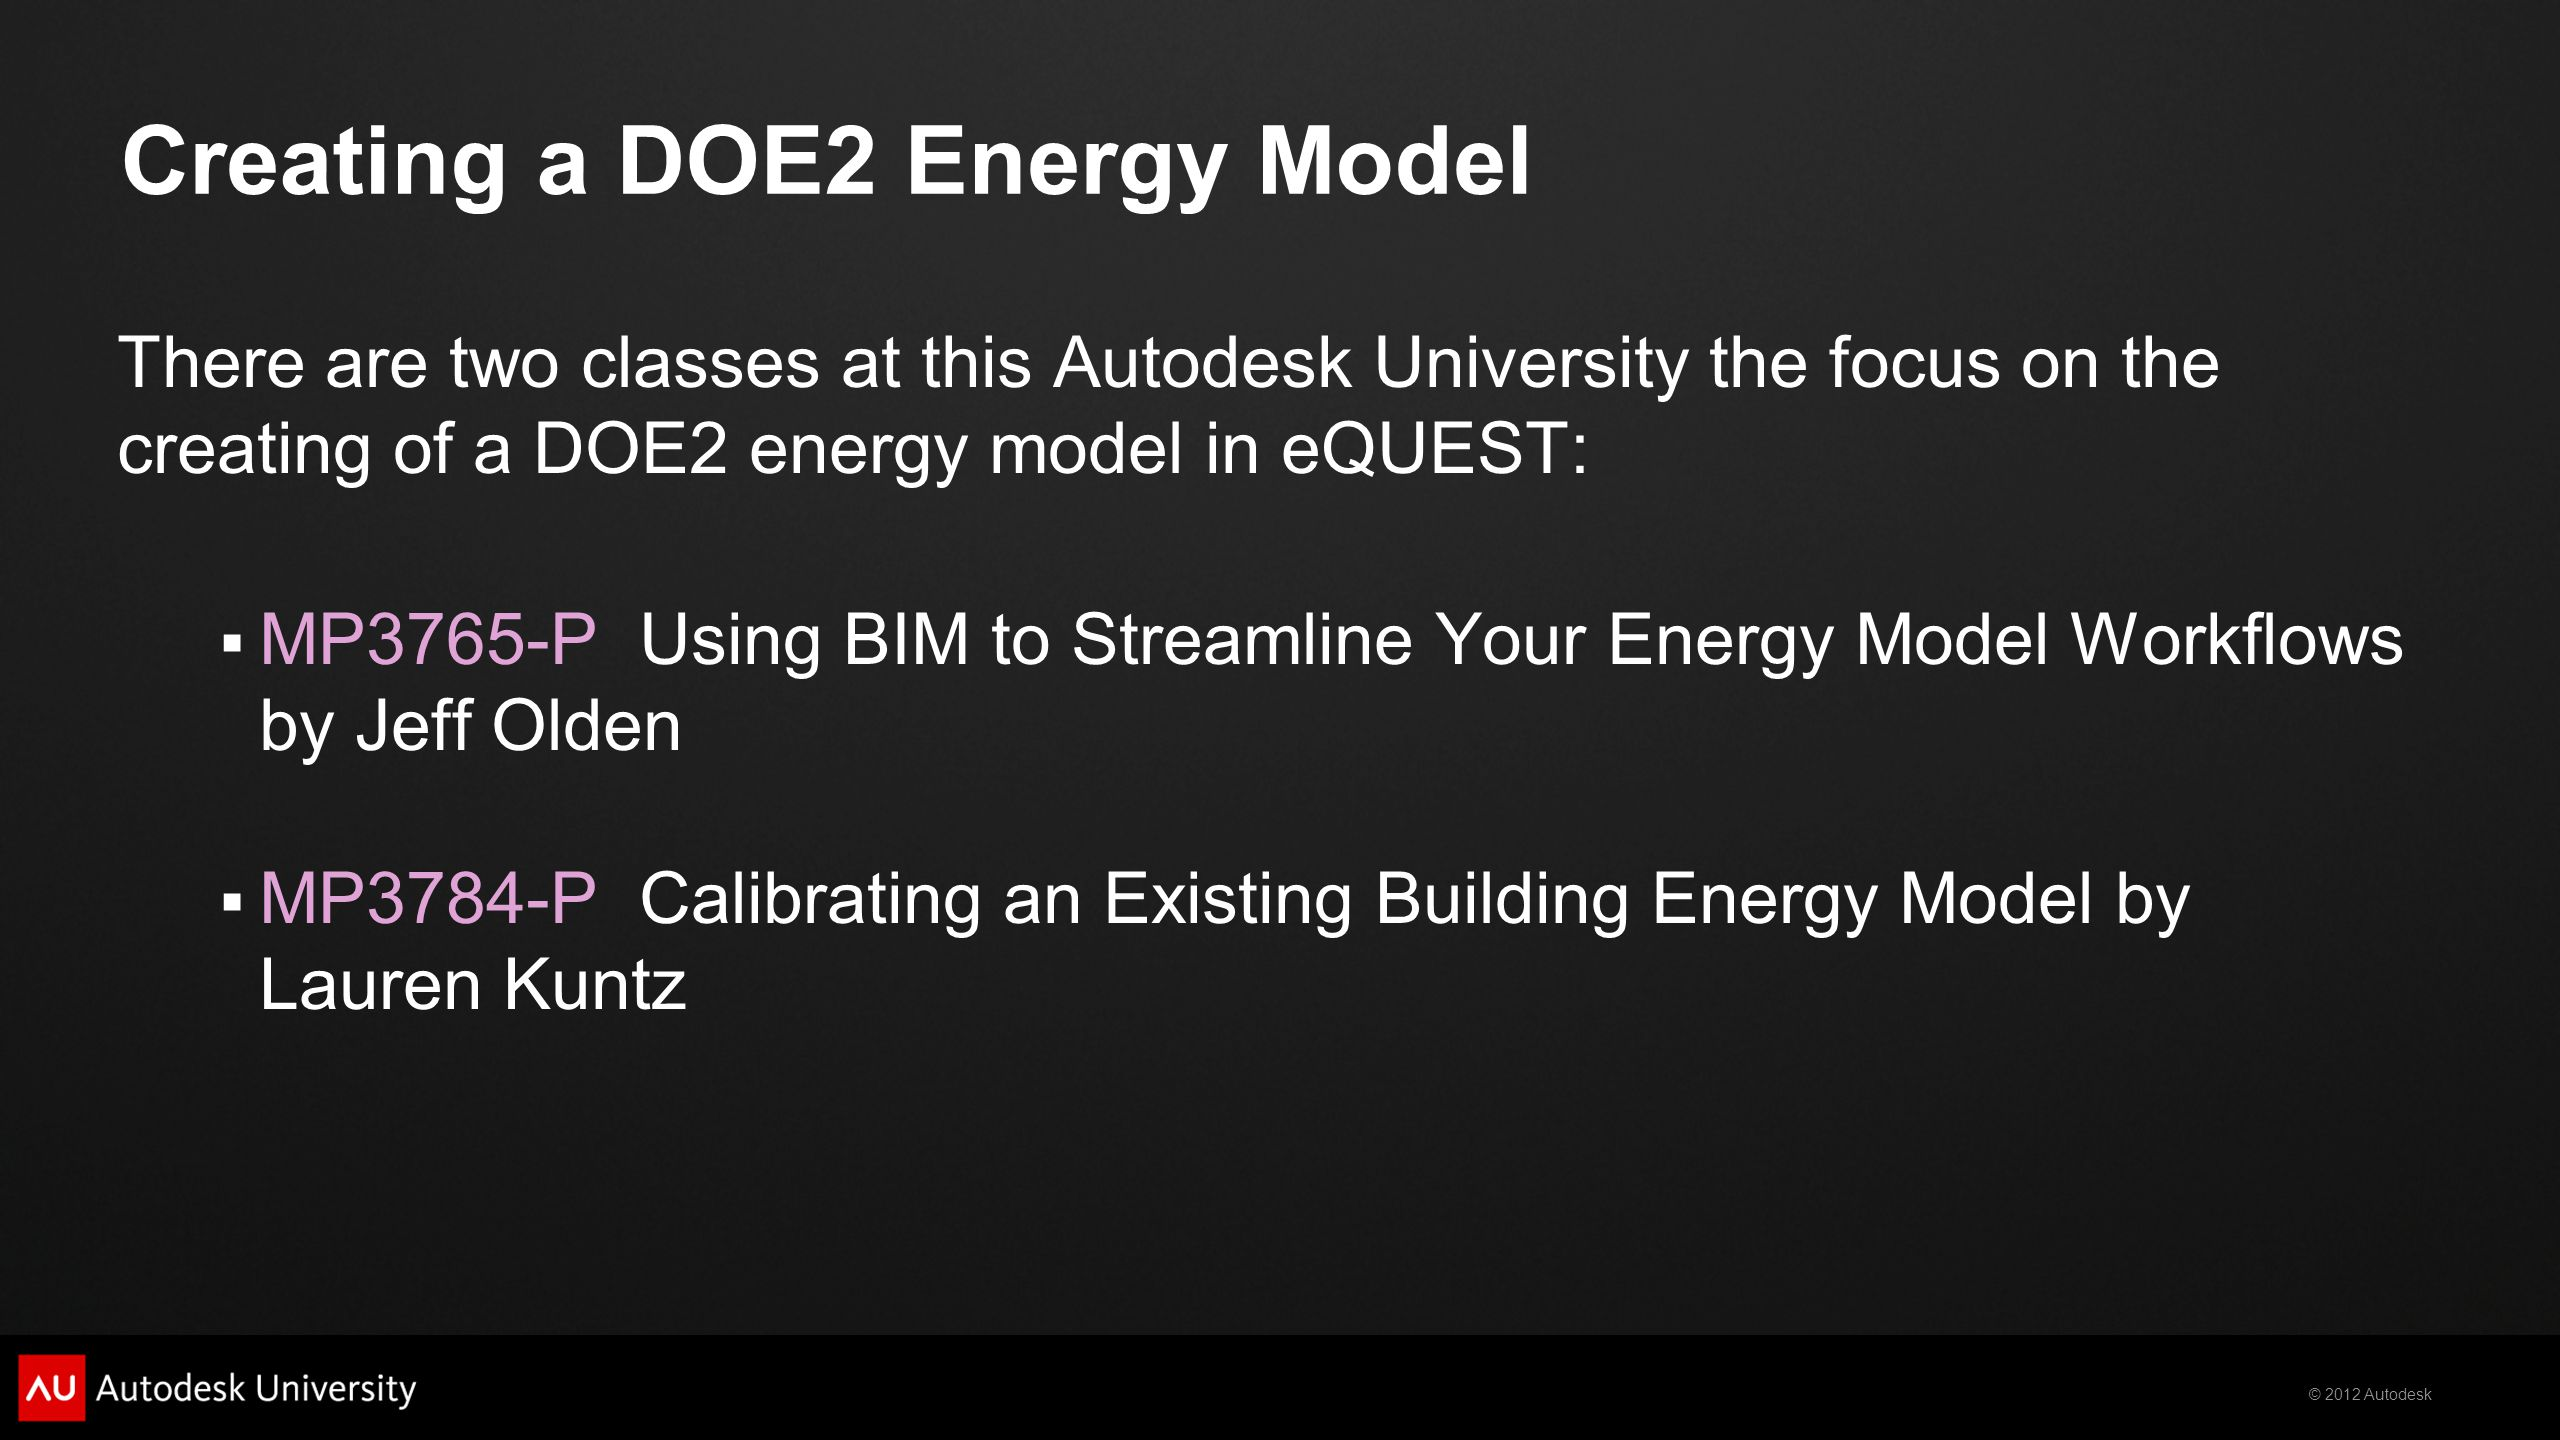 Creating a DOE2 Energy Model